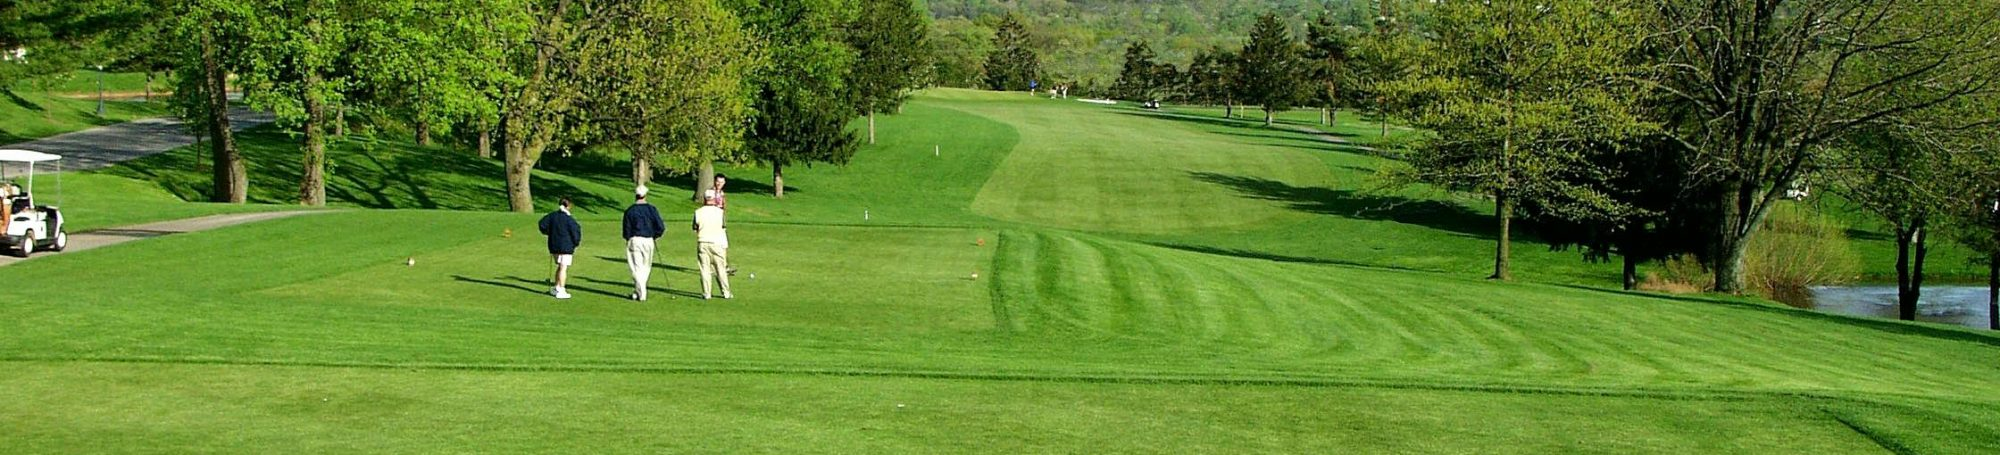 Open fairway with golfers on the left